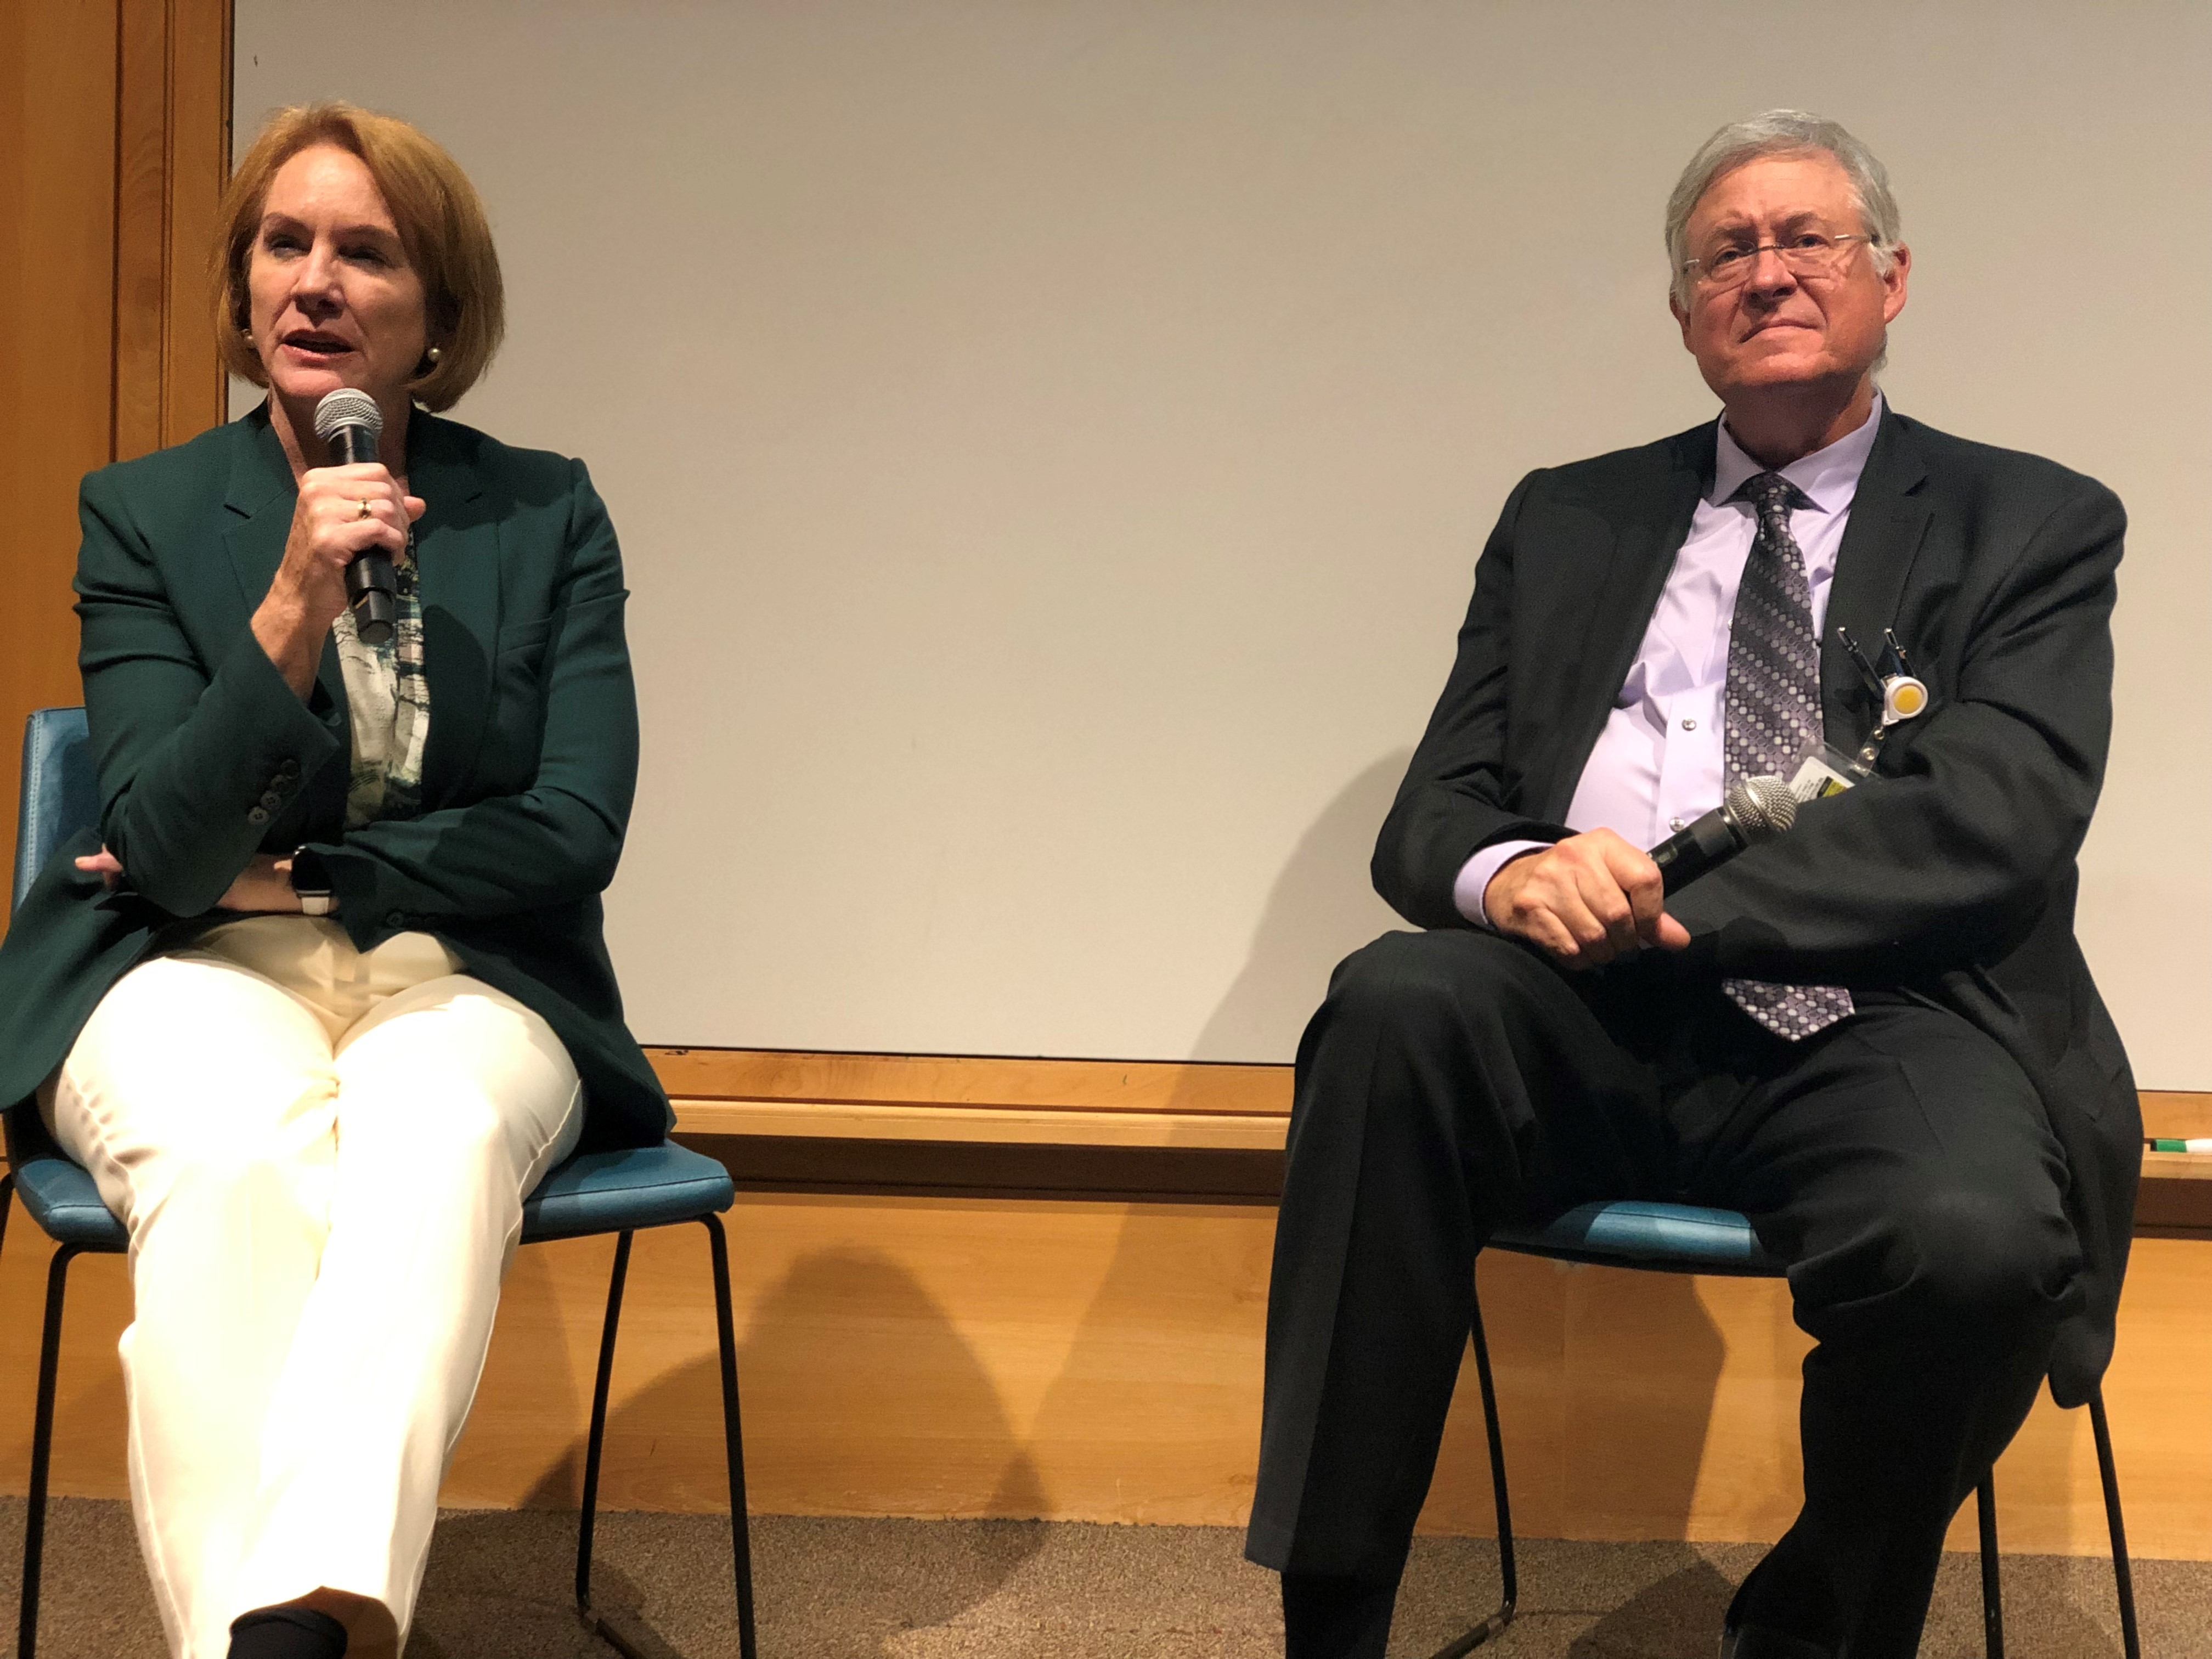 Seattle Mayor Jenny Durkan and oncologist, Dr. David Byrd